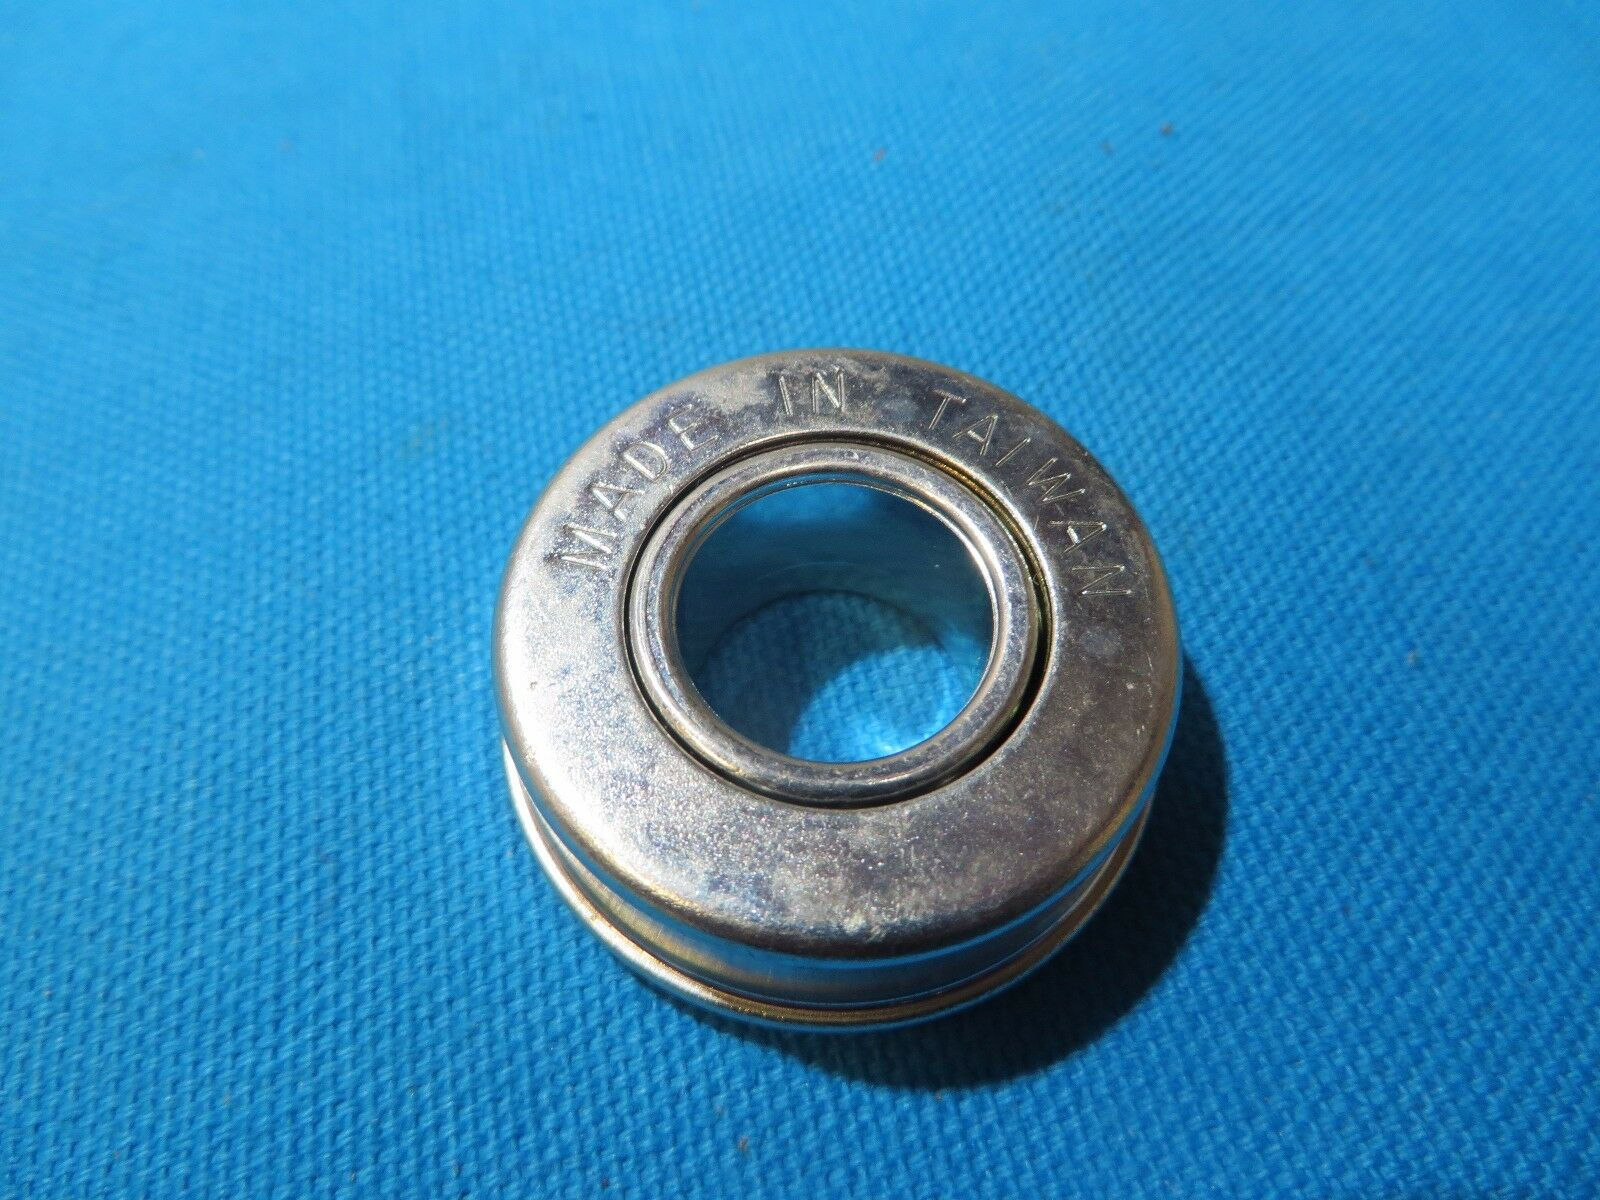 Rear Drive Axle Bearing For Three Wheel Bicycle 5 8 I D X 1 3 8 O Dx 3 8 New Sporting Goods Bearings